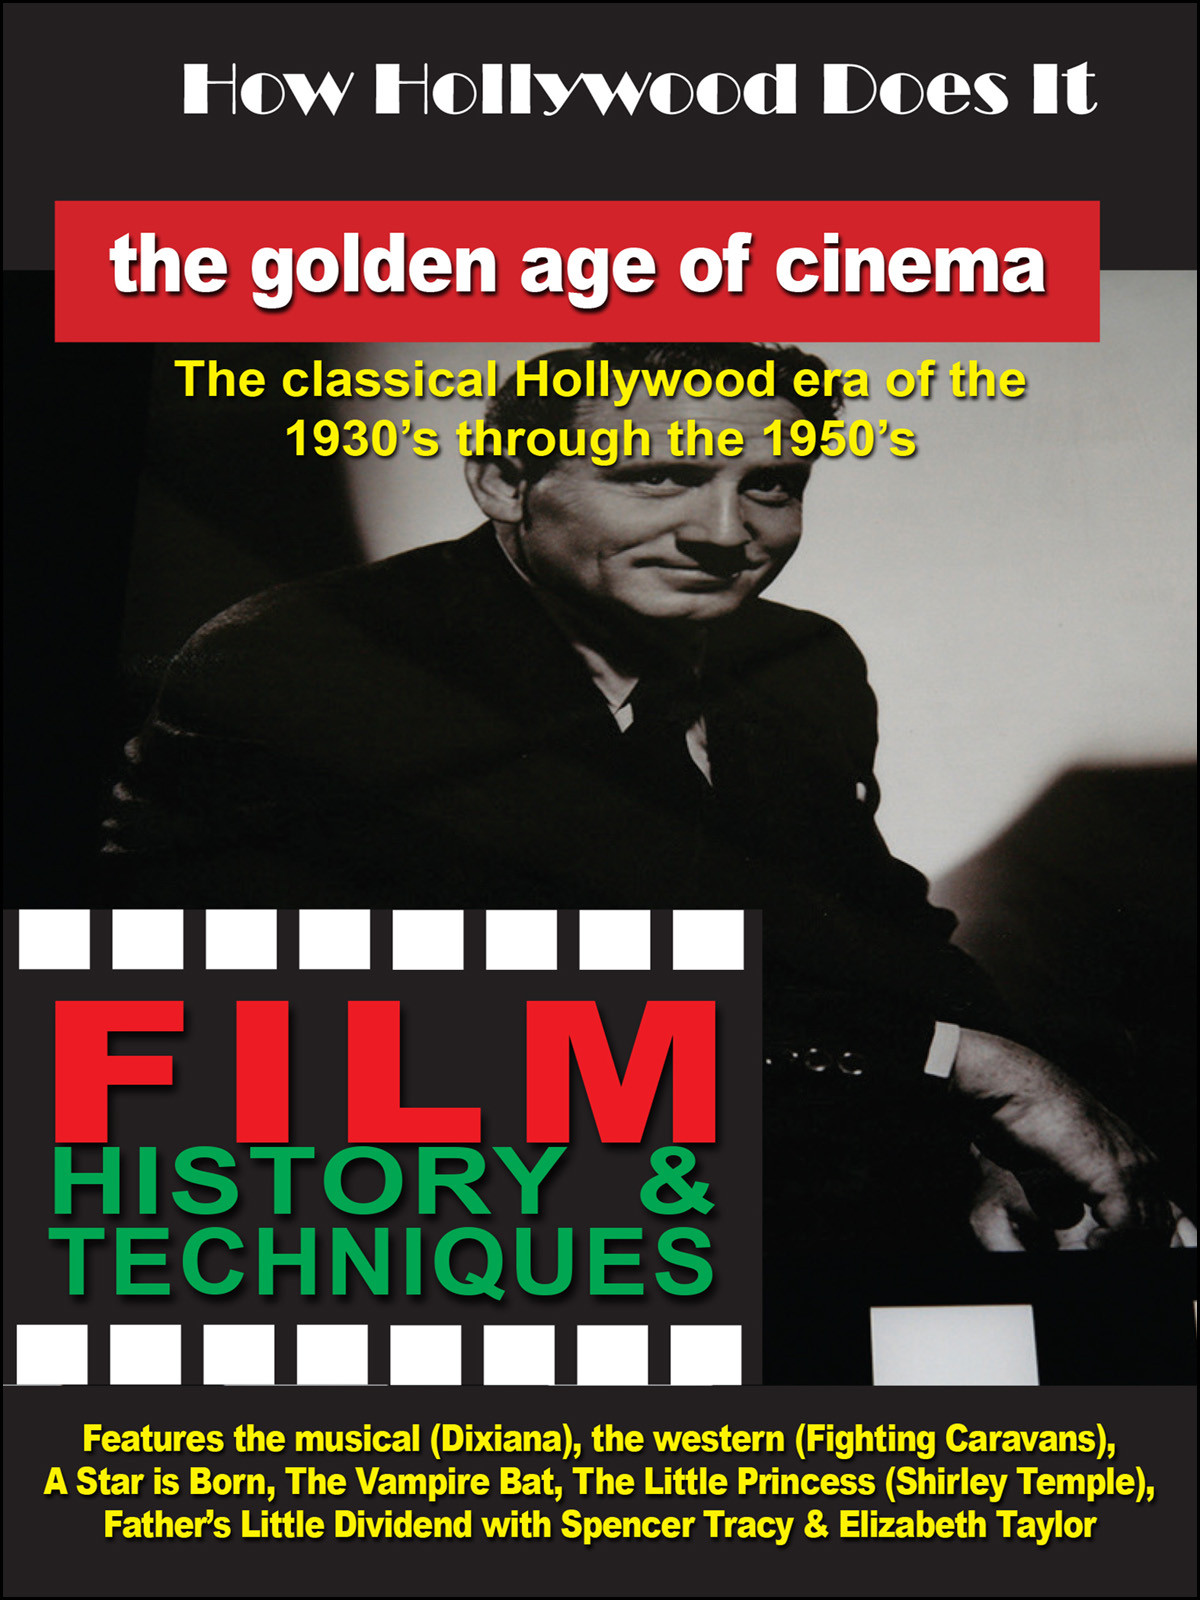 F2711 - How Hollywood Does It - Film History & Techniques of The Golden Age of Cinema